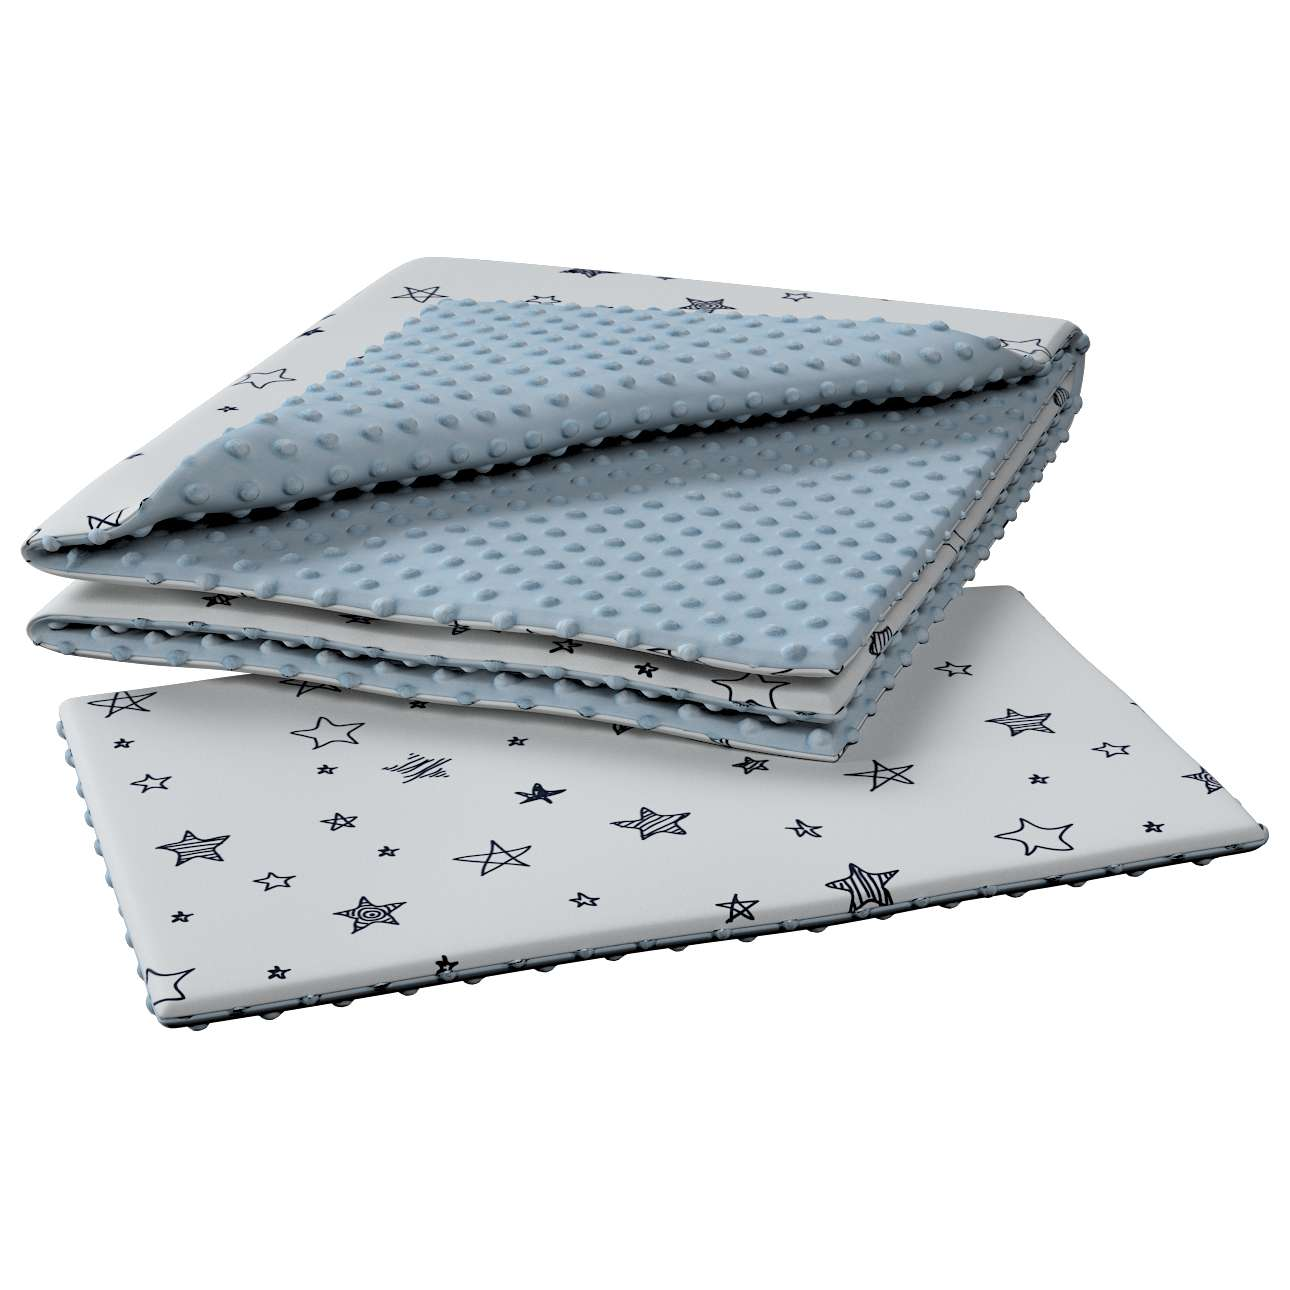 Minky-Babydecke von der Kollektion Magic Collection, Stoff: 500-08